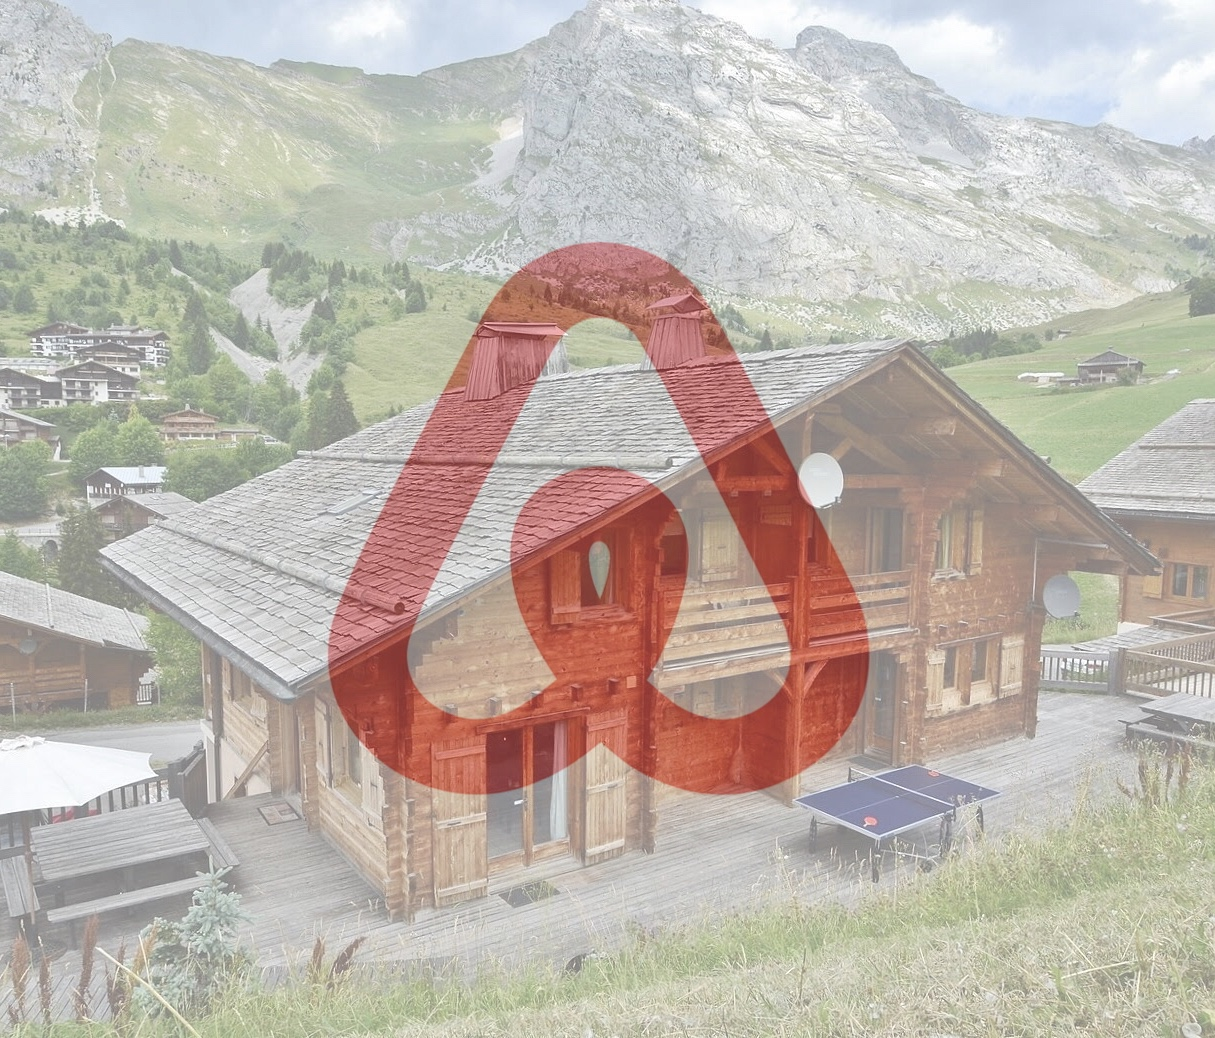 Your Chalet is available for short stays on Airbnb